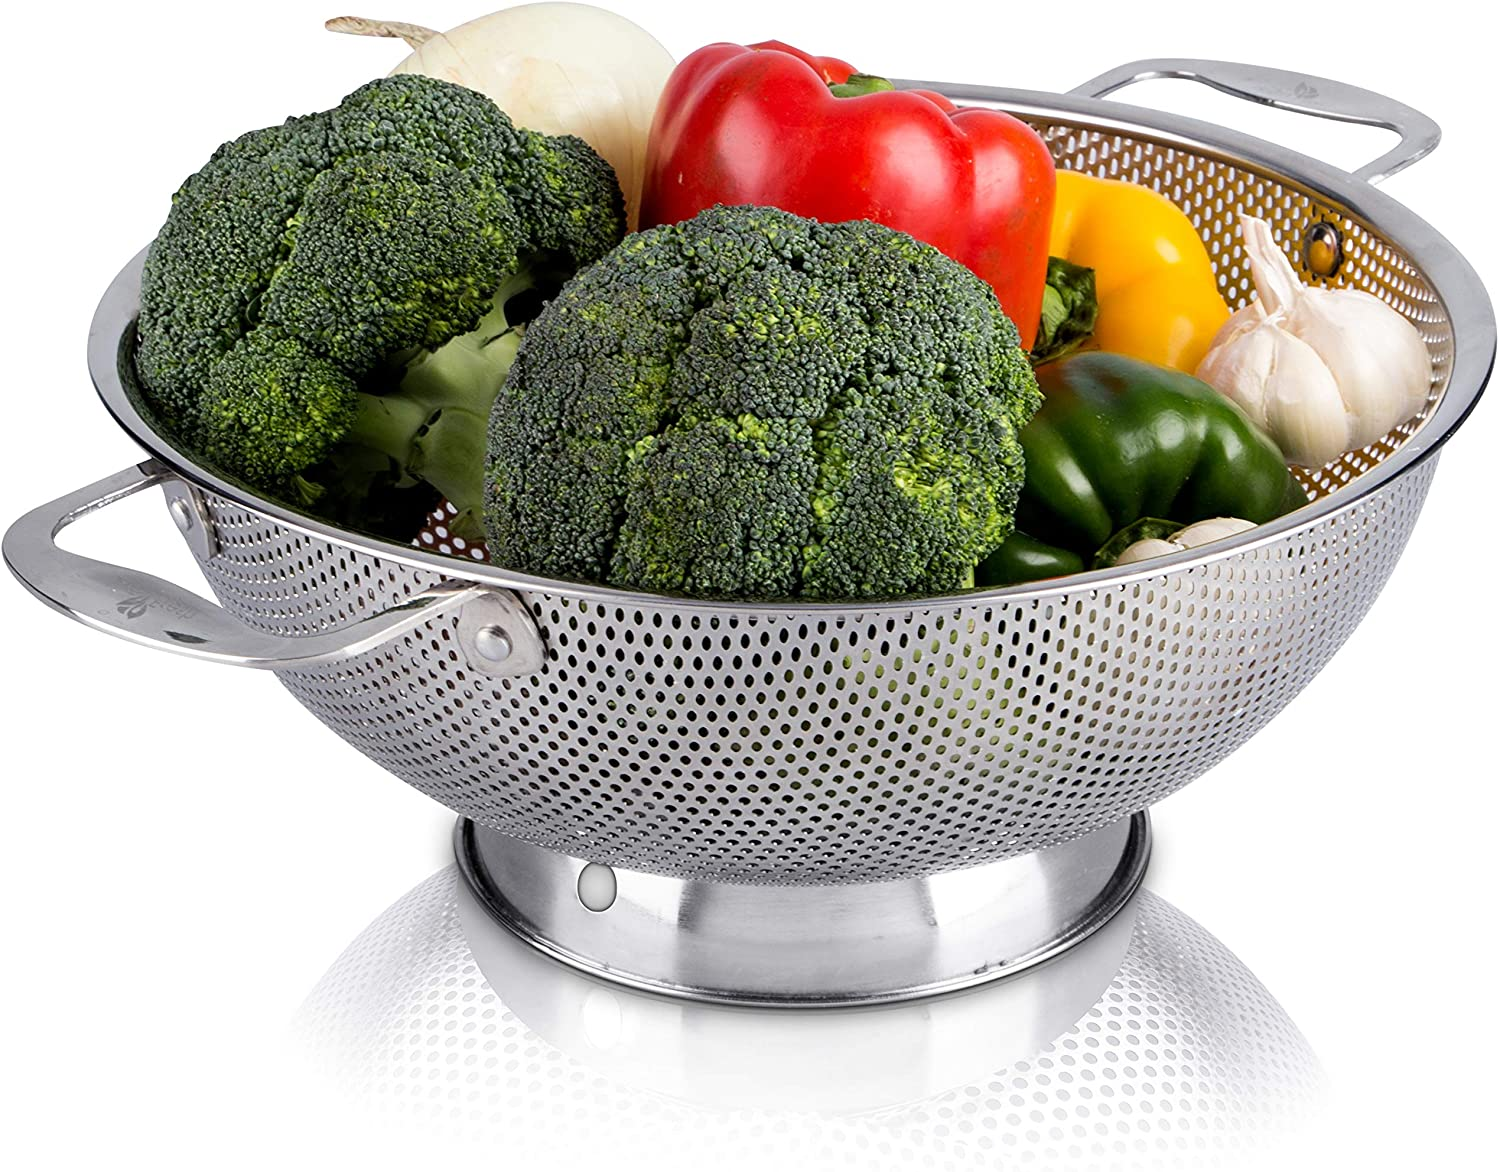 LiveFresh Stainless Steel Micro-Perforated Pasta Strainer